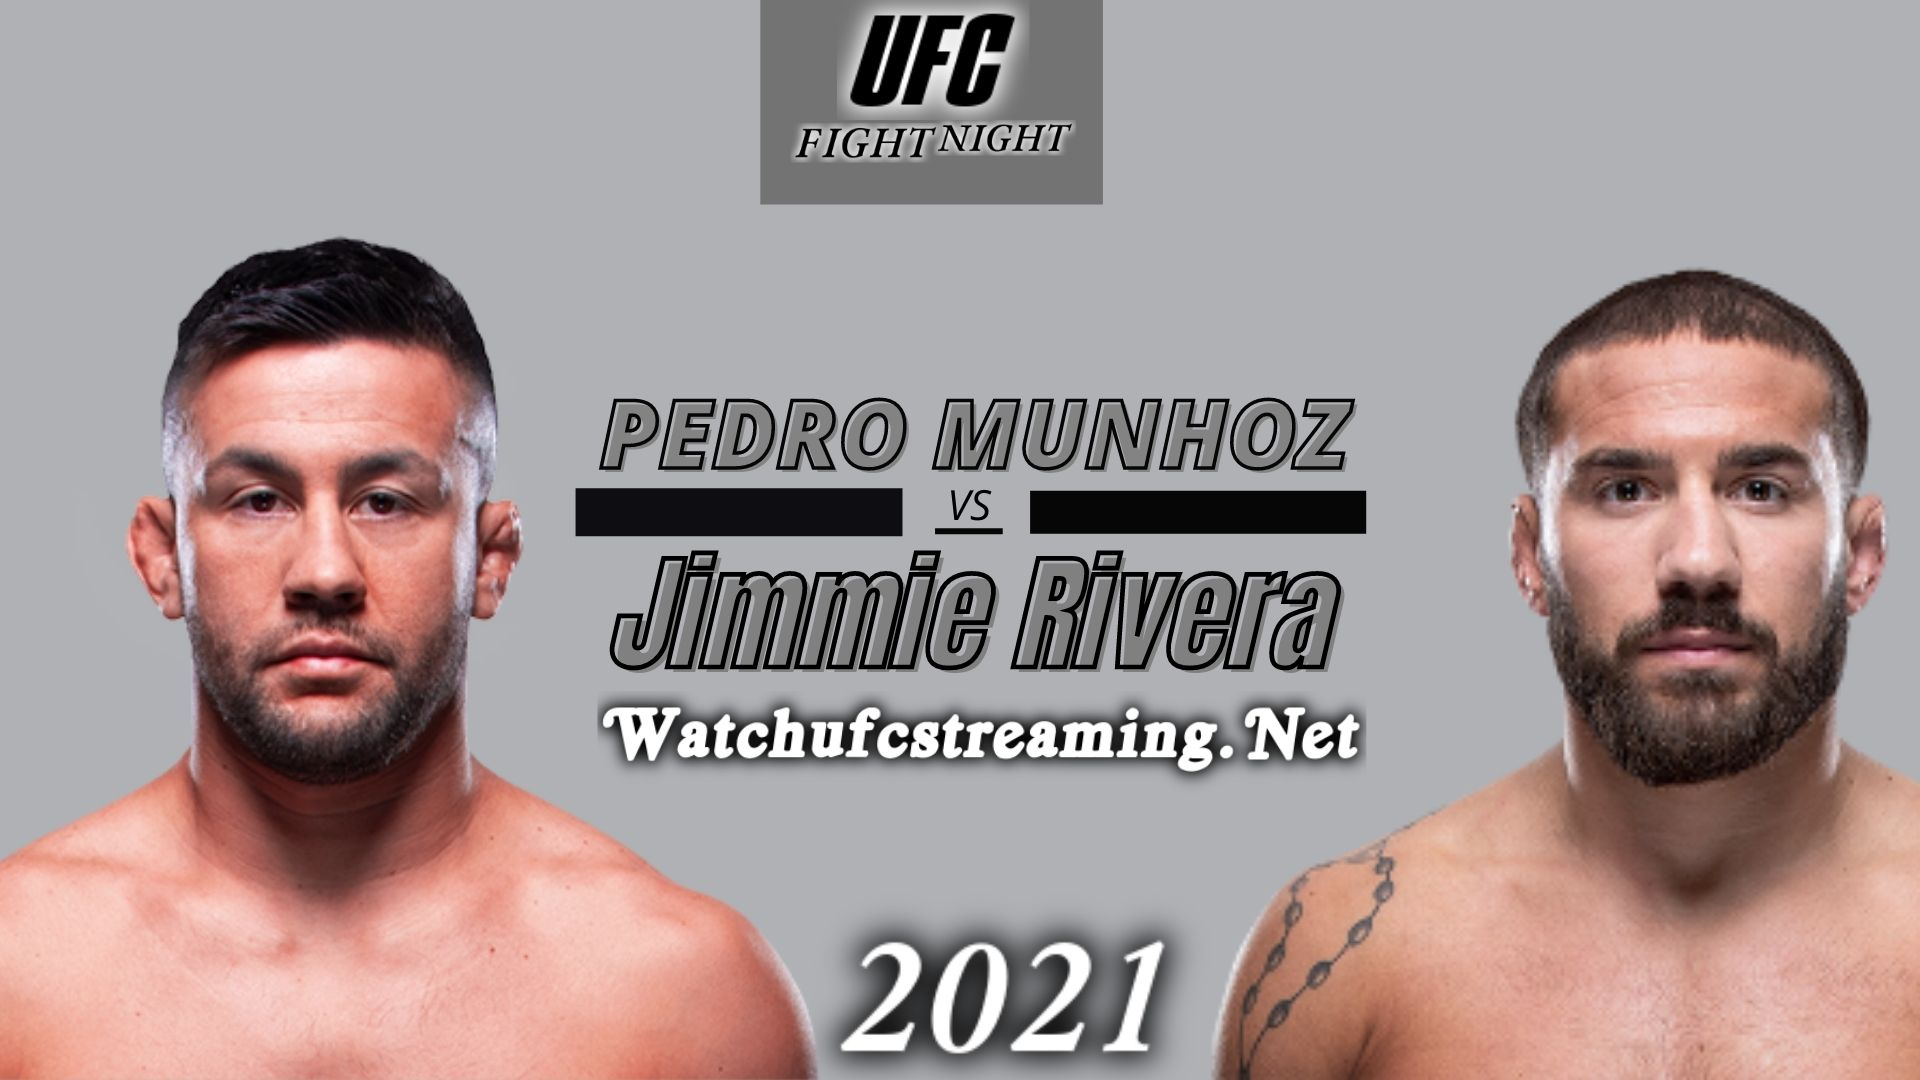 UFC - Pedro Munhoz Vs Jimmie Rivera Highlights 2021 | Bantamweight